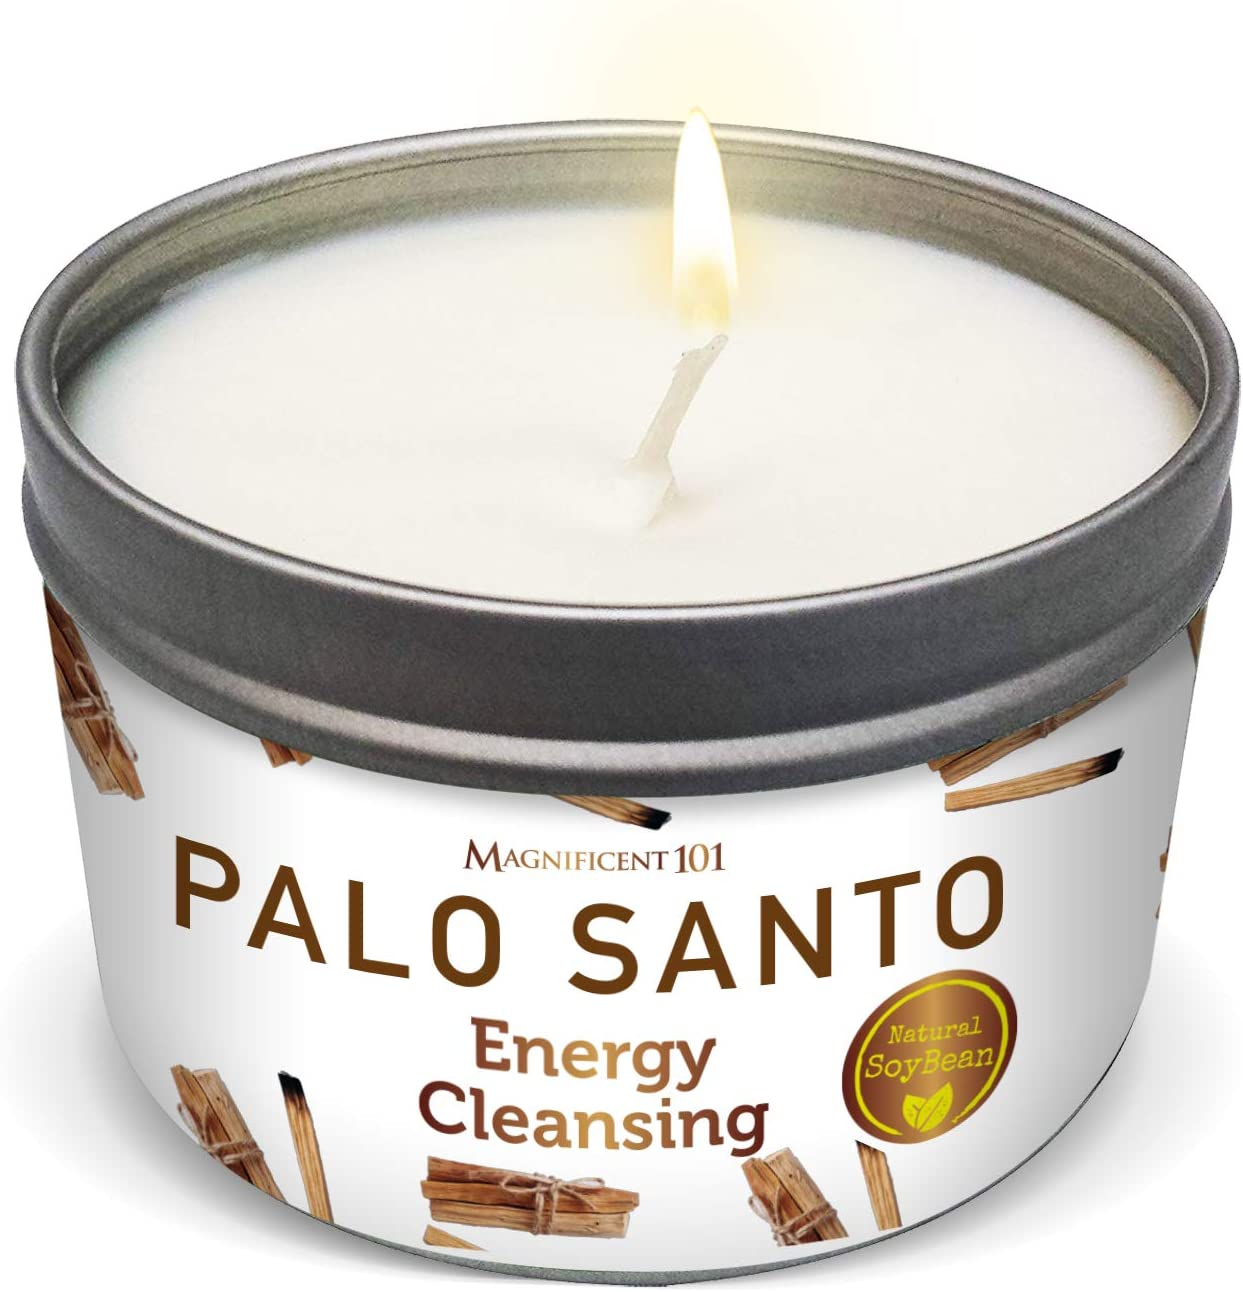 PALO Santo Smudge Candle for Home Energy Cleansing, Banishes Negative Energy - Natural Soybean Wax Tin Candle for Purification and Chakra Healing